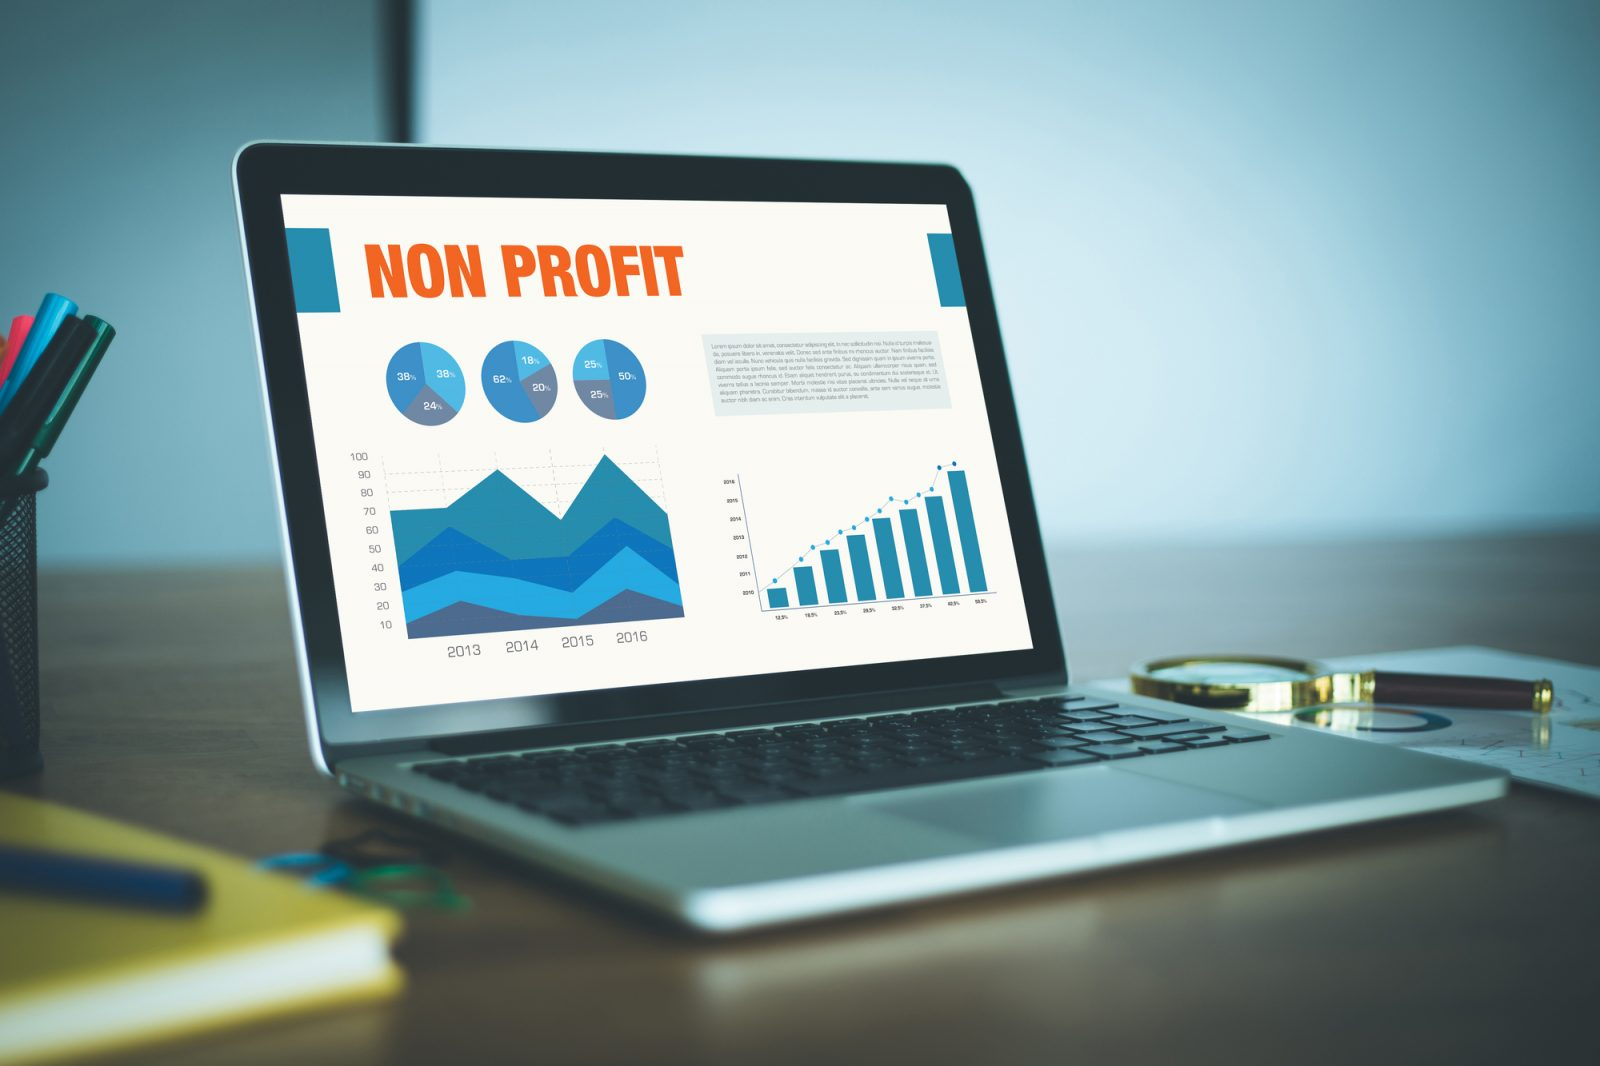 What Can Managed Service Providers Do for Non Profits?